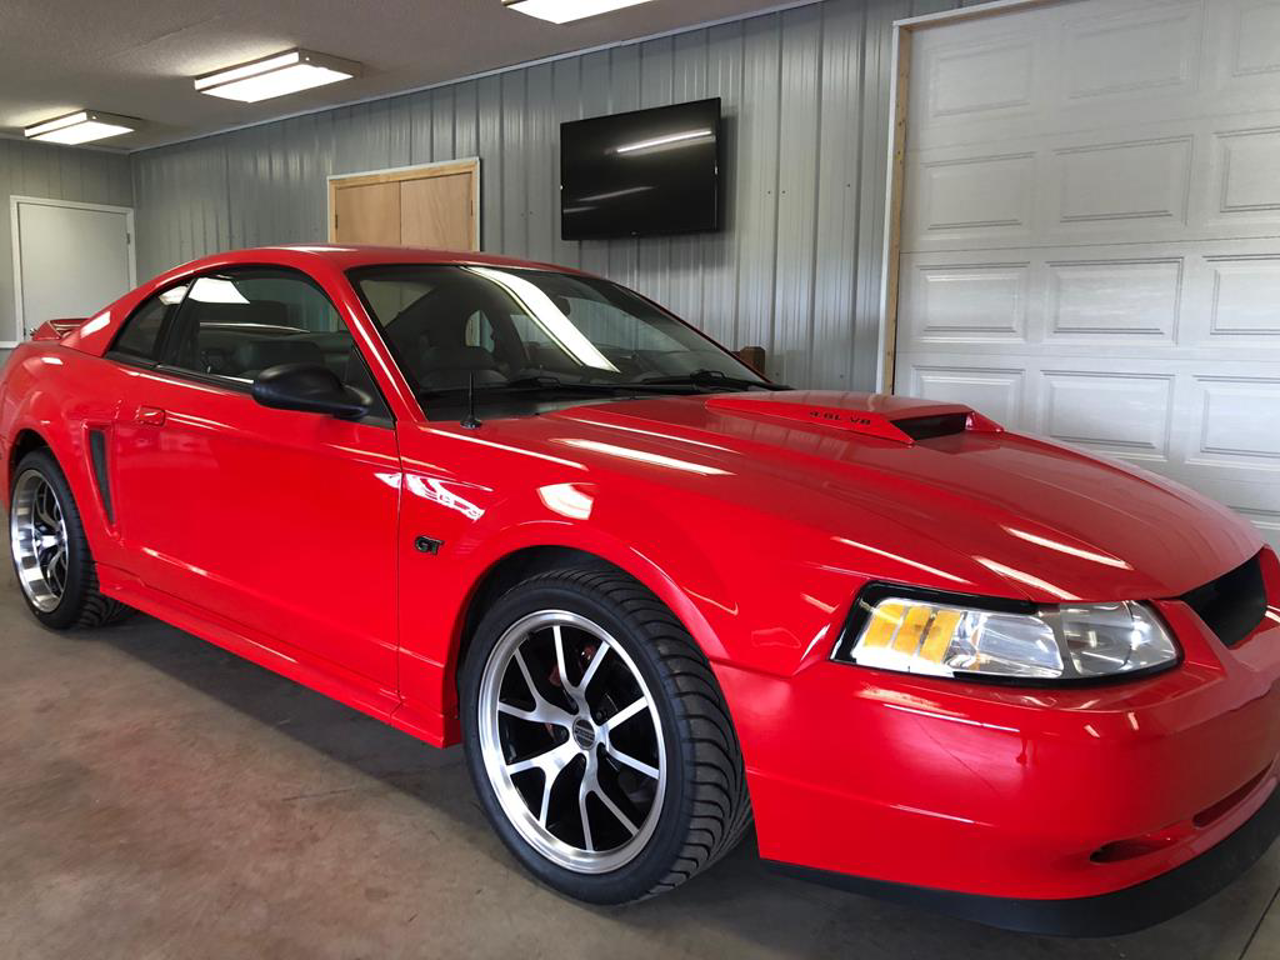 2000 Ford Mustang GT for Sale | ClassicCars.com | CC-1133617